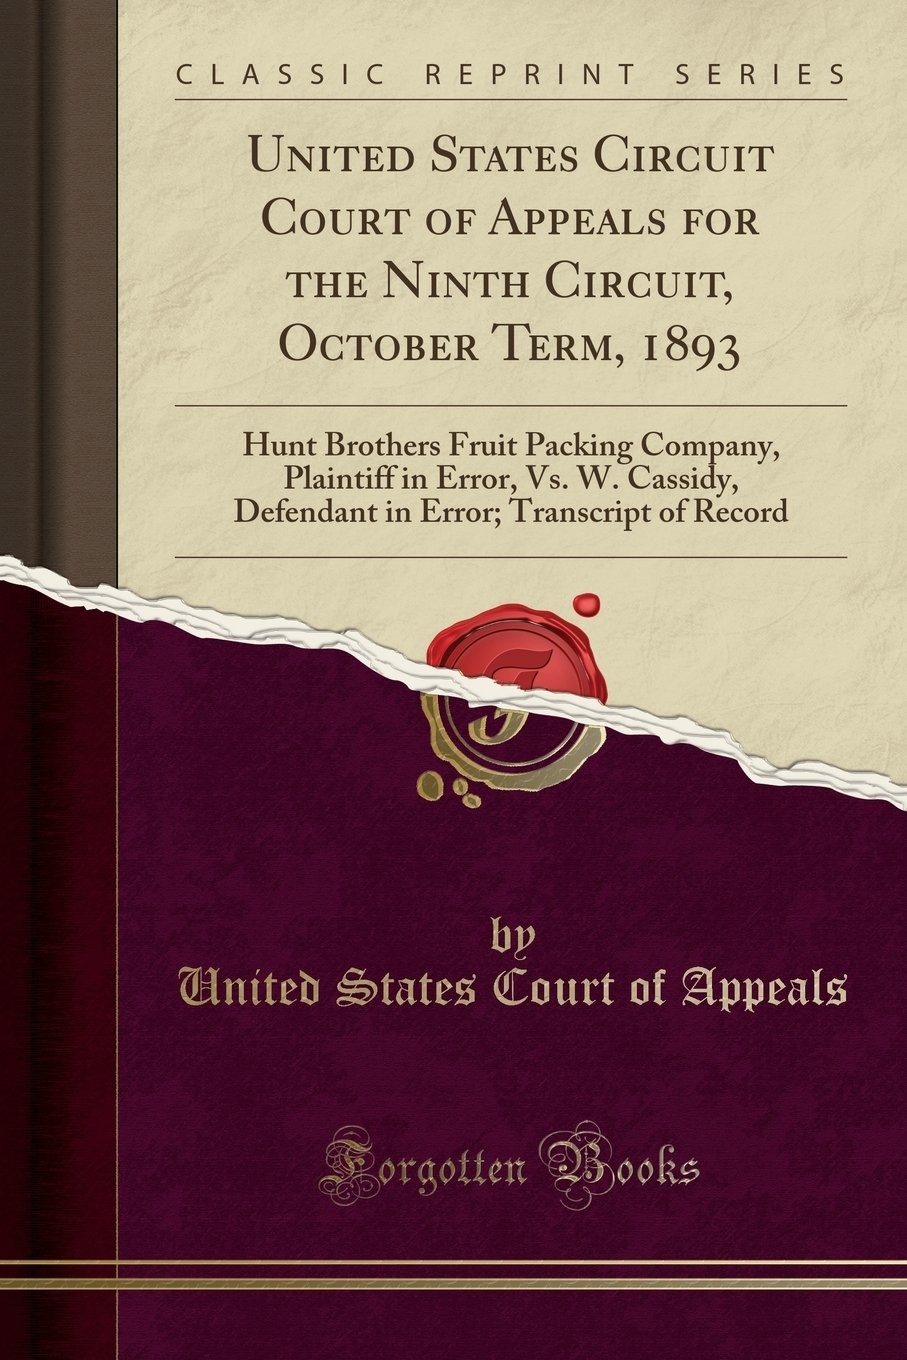 Download United States Circuit Court of Appeals for the Ninth Circuit, October Term, 1893: Hunt Brothers Fruit Packing Company, Plaintiff in Error, Vs. W. ... Error; Transcript of Record (Classic Reprint) ebook